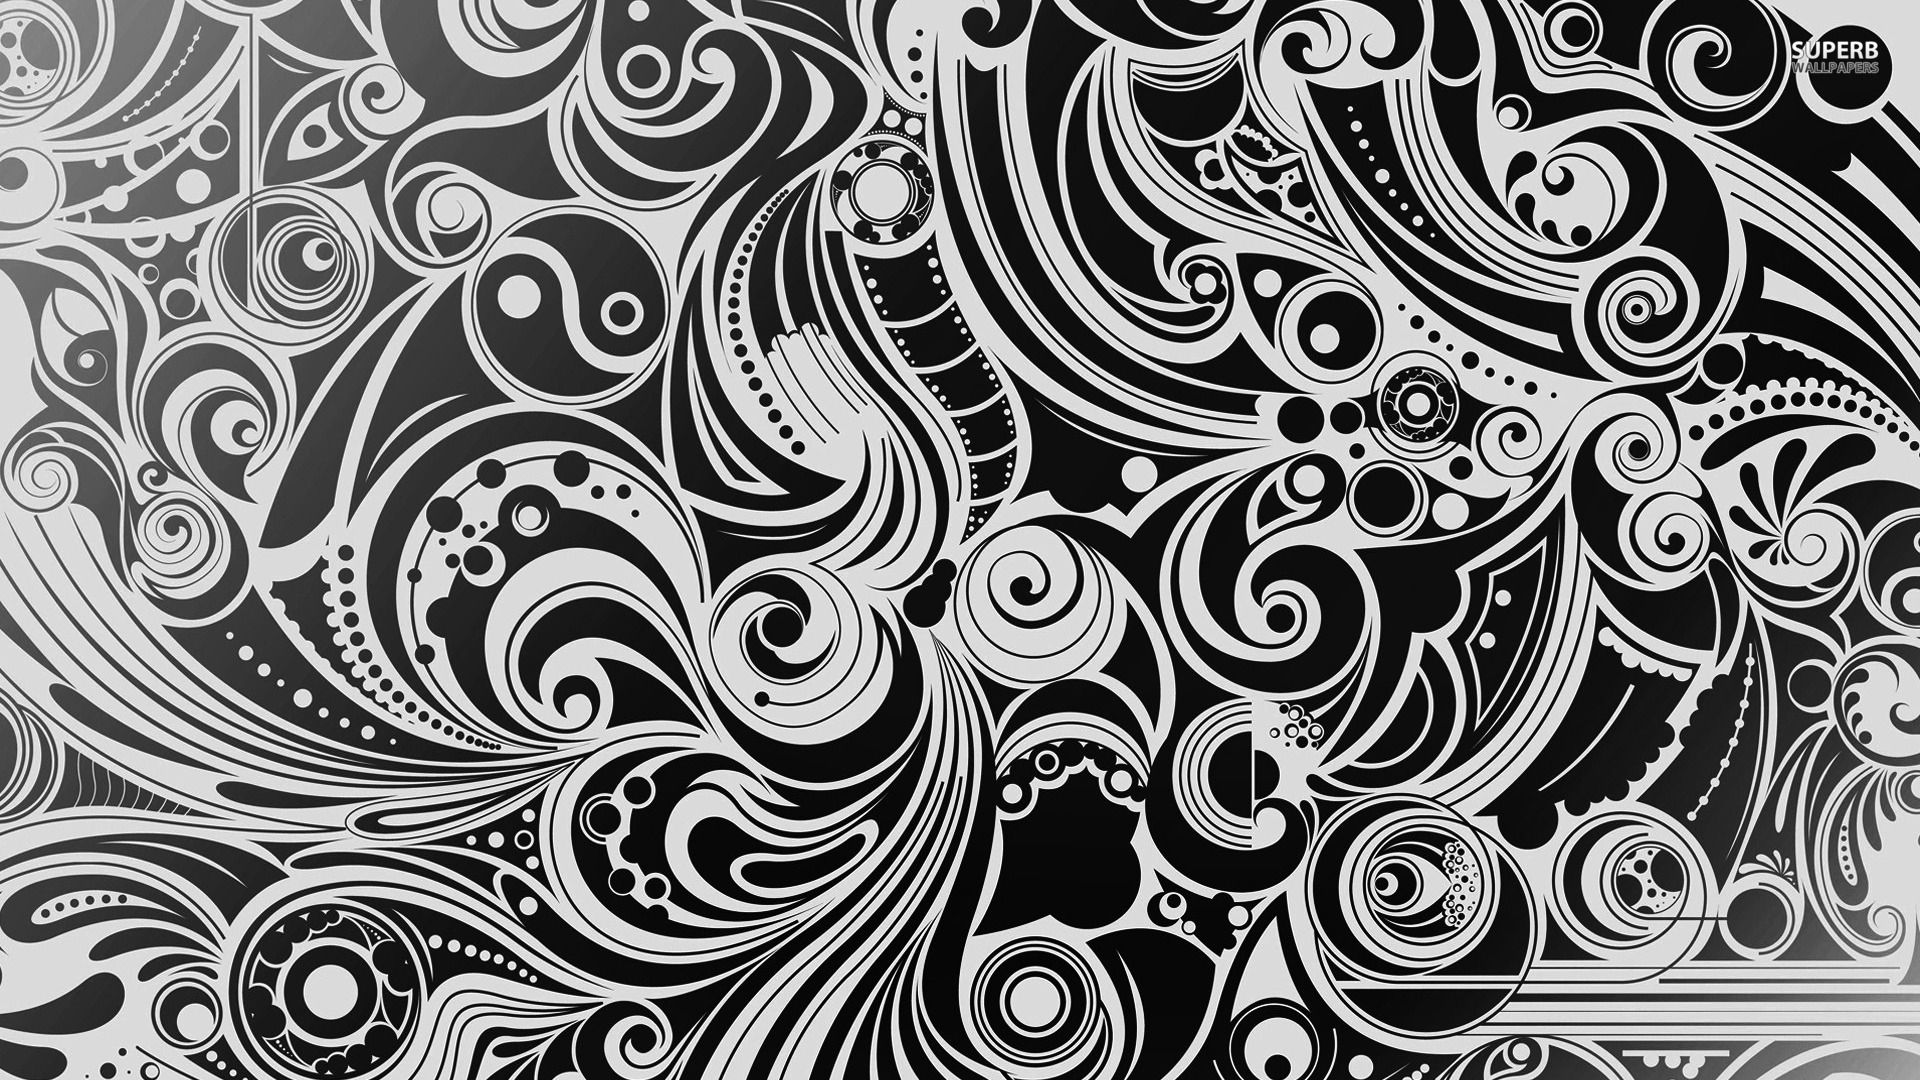 Black And White Abstract Wallpapers Top Free Black And White Abstract Backgrounds Wallpaperaccess